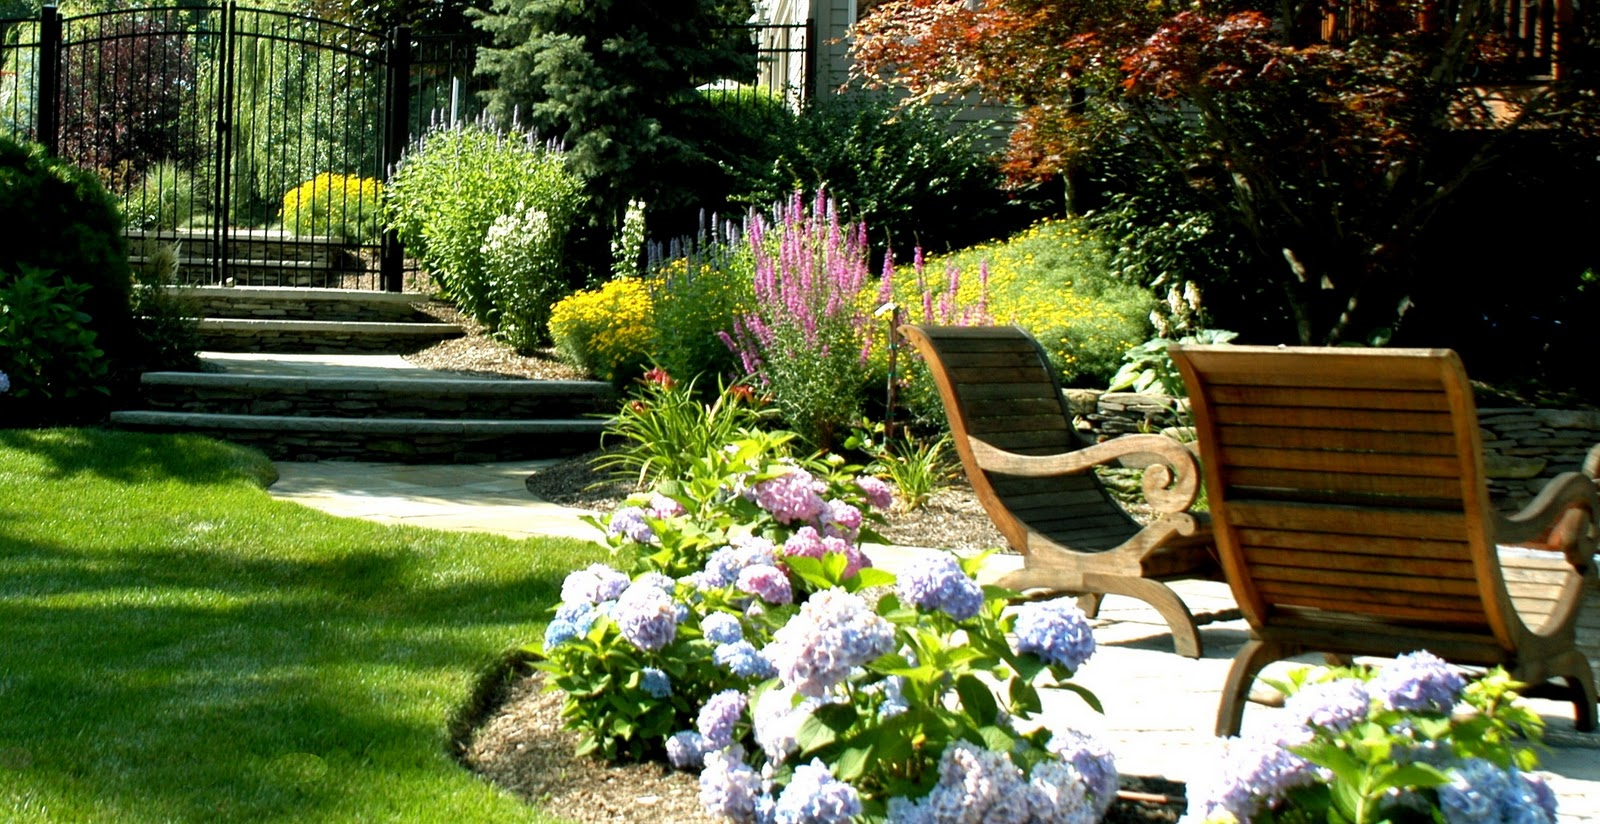 Hightechlandscapes new jersey landscape design for Garden design pictures